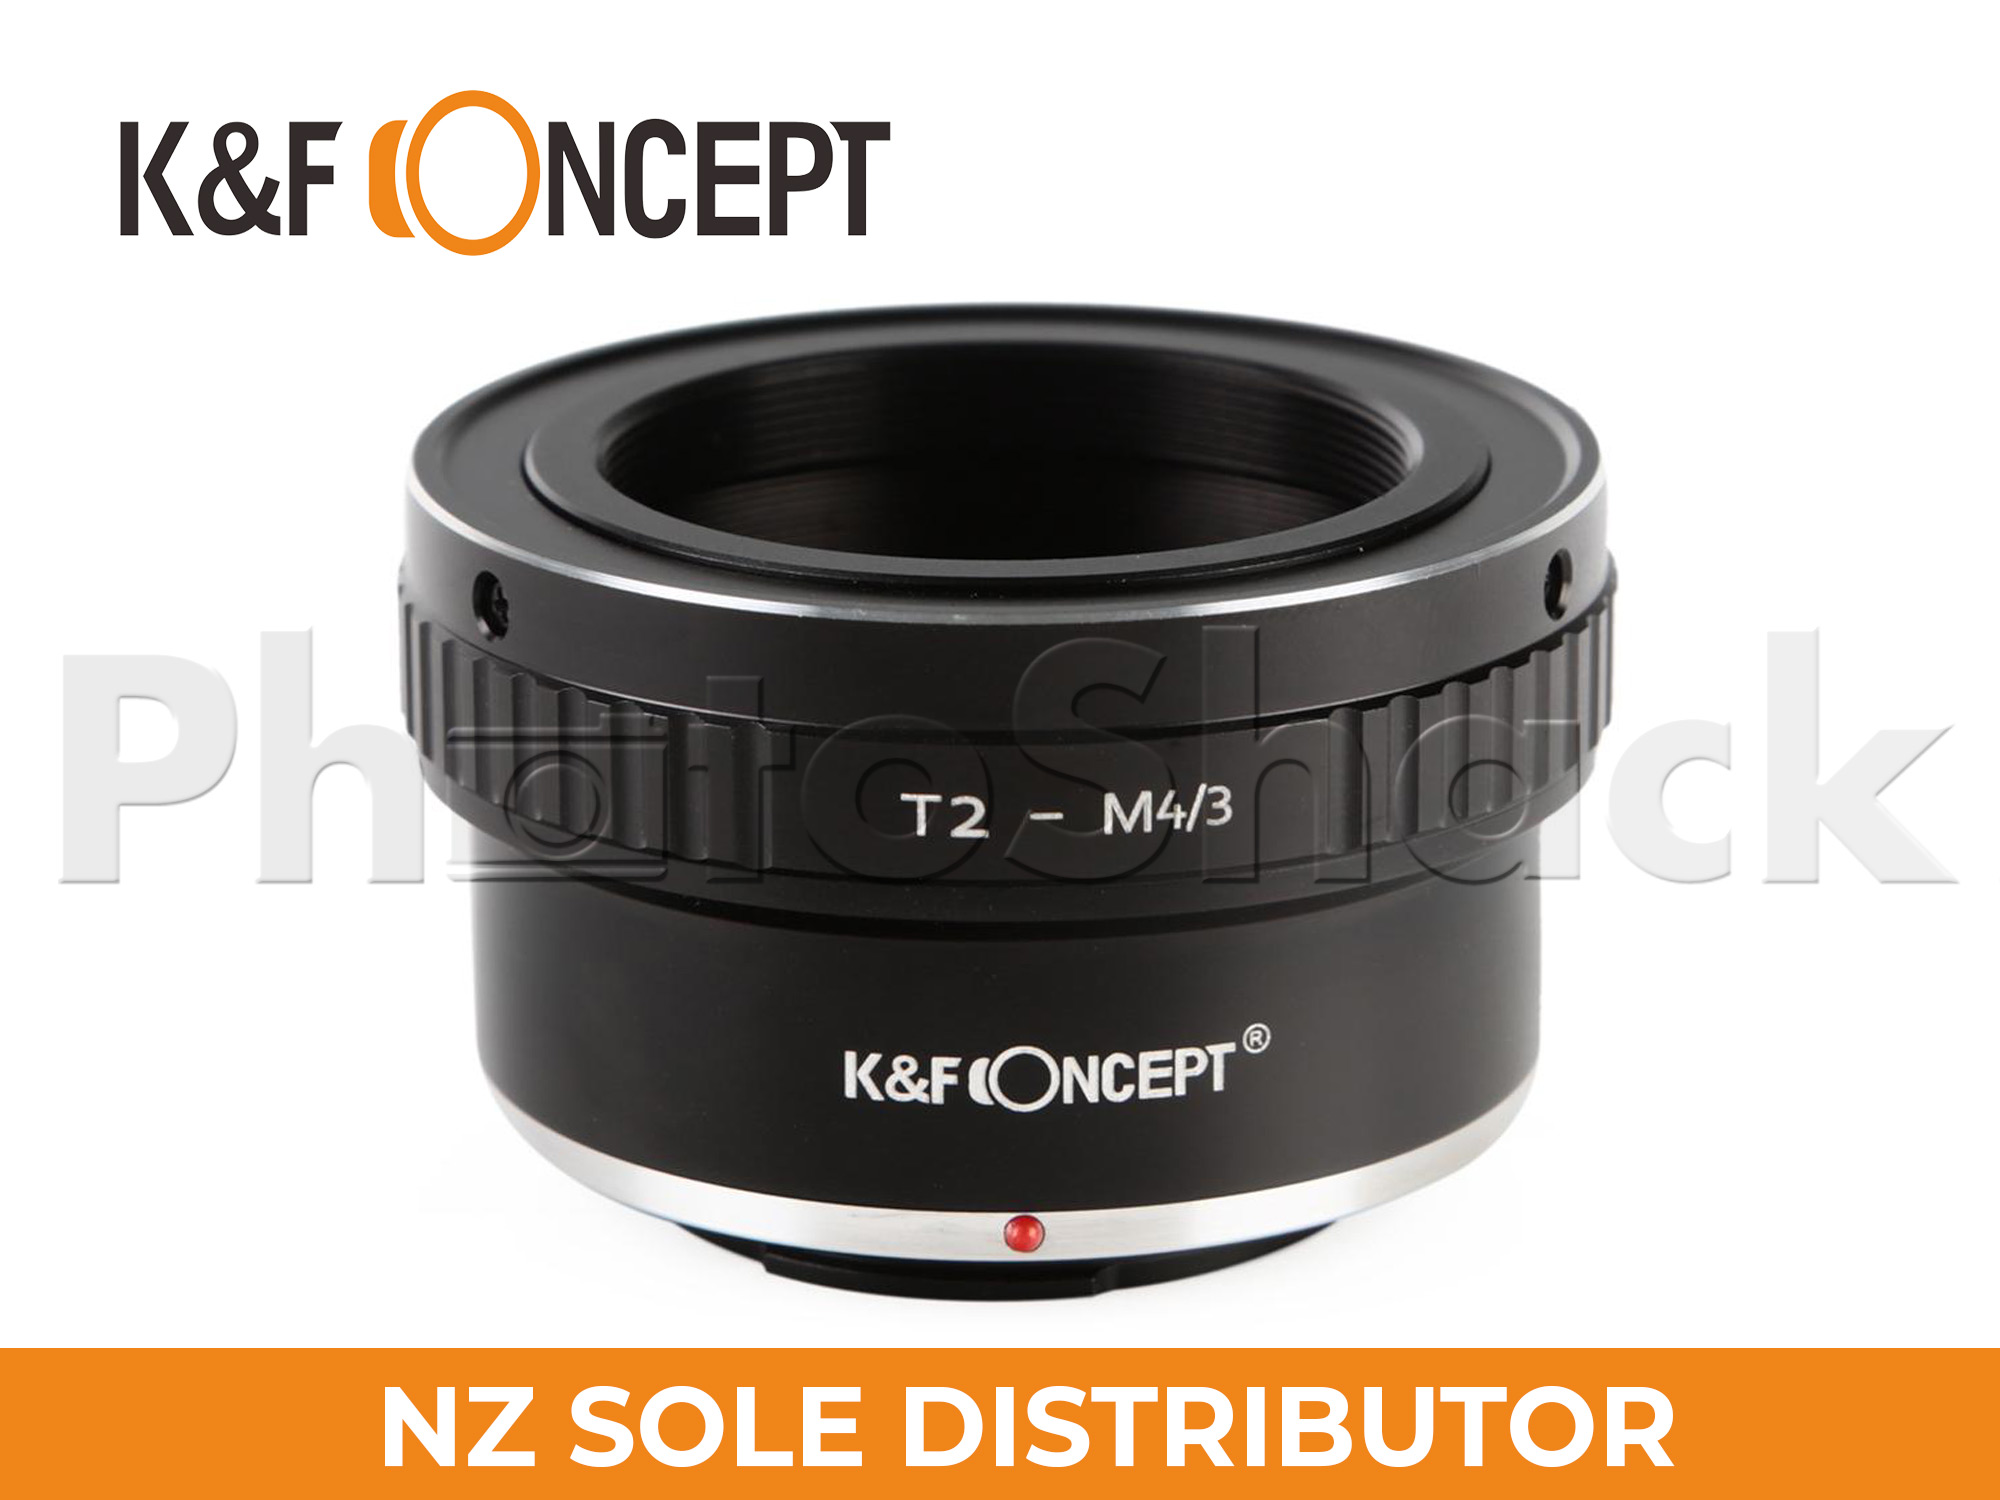 K&F Concept T2 Telescope Mount Lenses to Panasonic M43 Mount Camera Adapter Converter